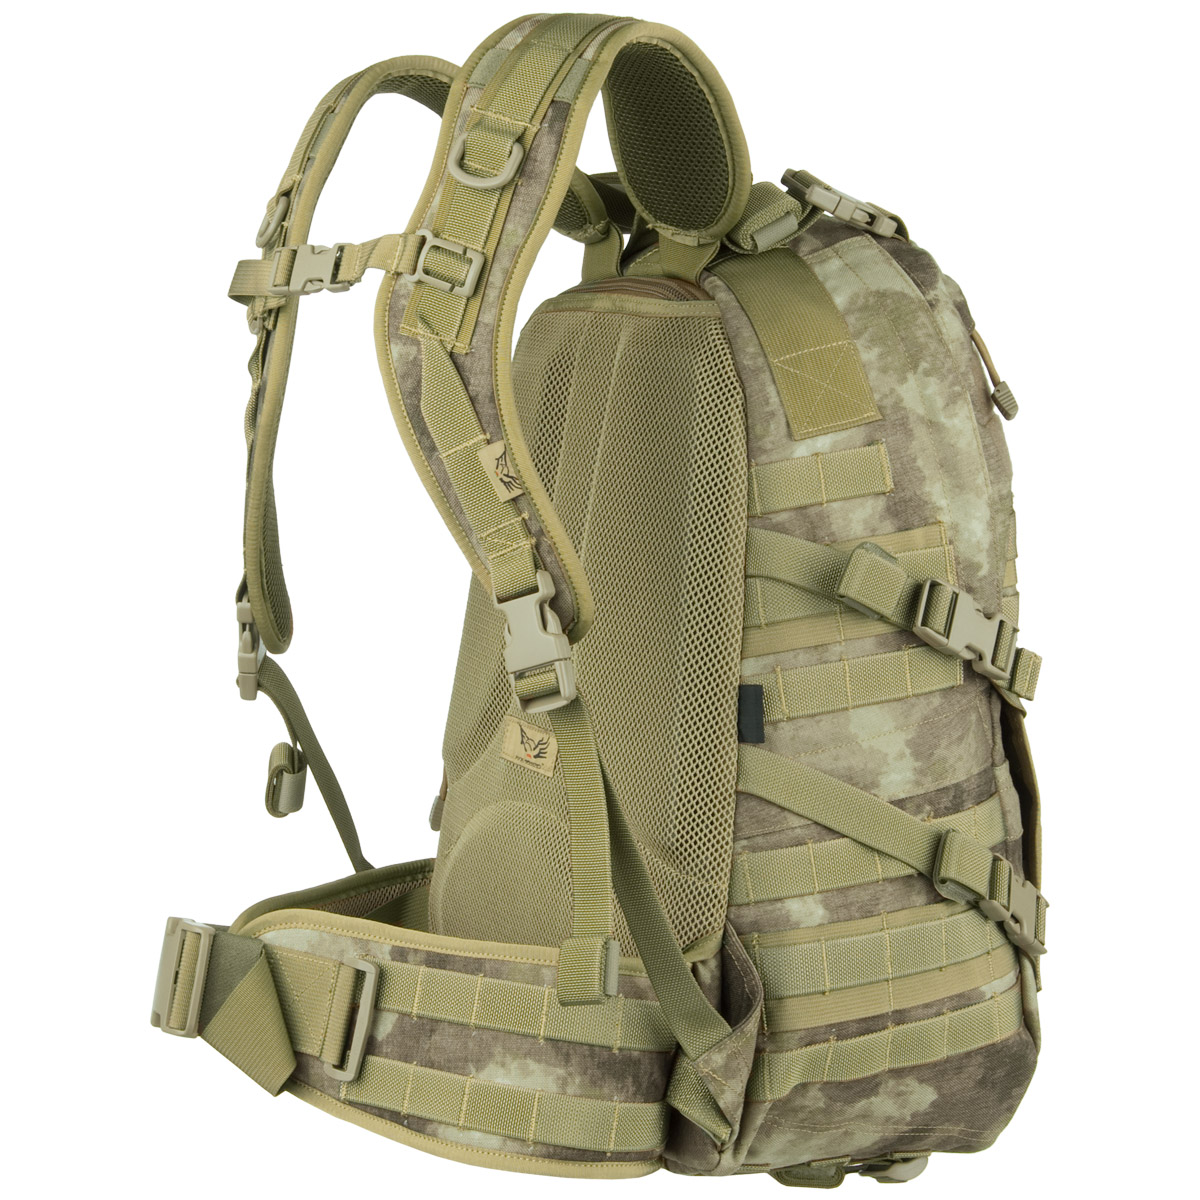 Flyye Tactical Fast Edc Pack Army Rucksack Hiking Molle